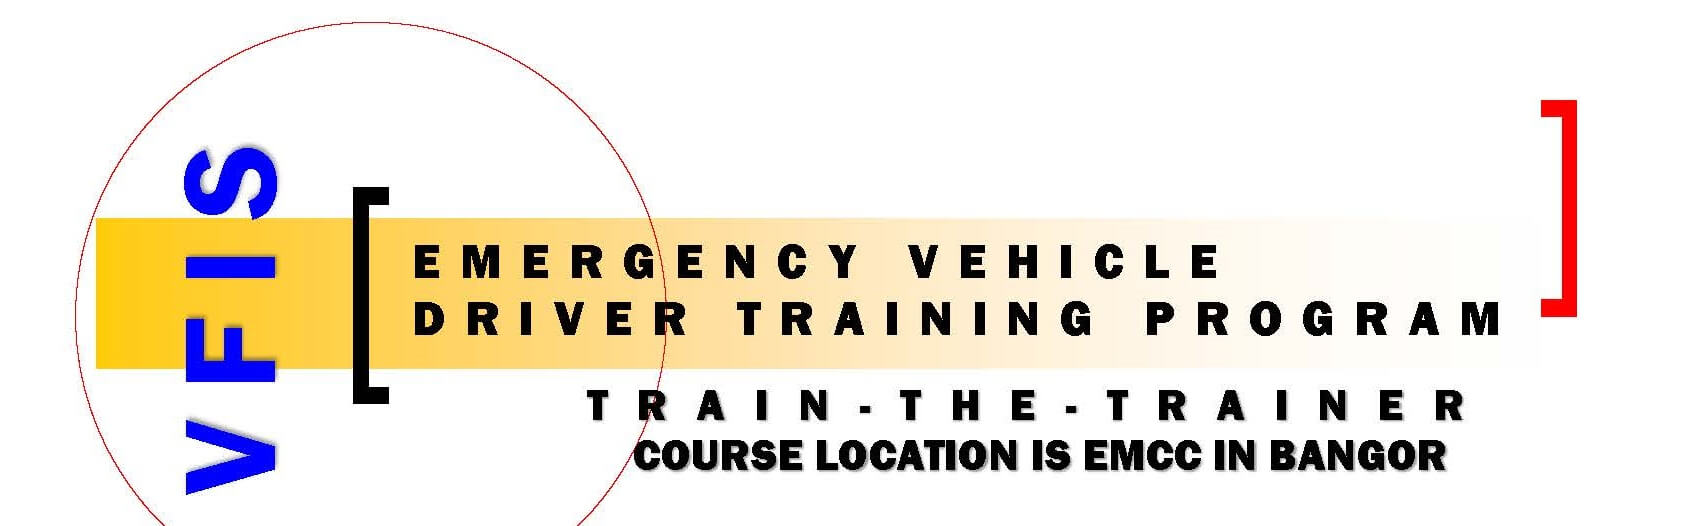 VFIS Emergency Vehicle Driver Training Train-the-Trainer Program held at EMCC Bangor